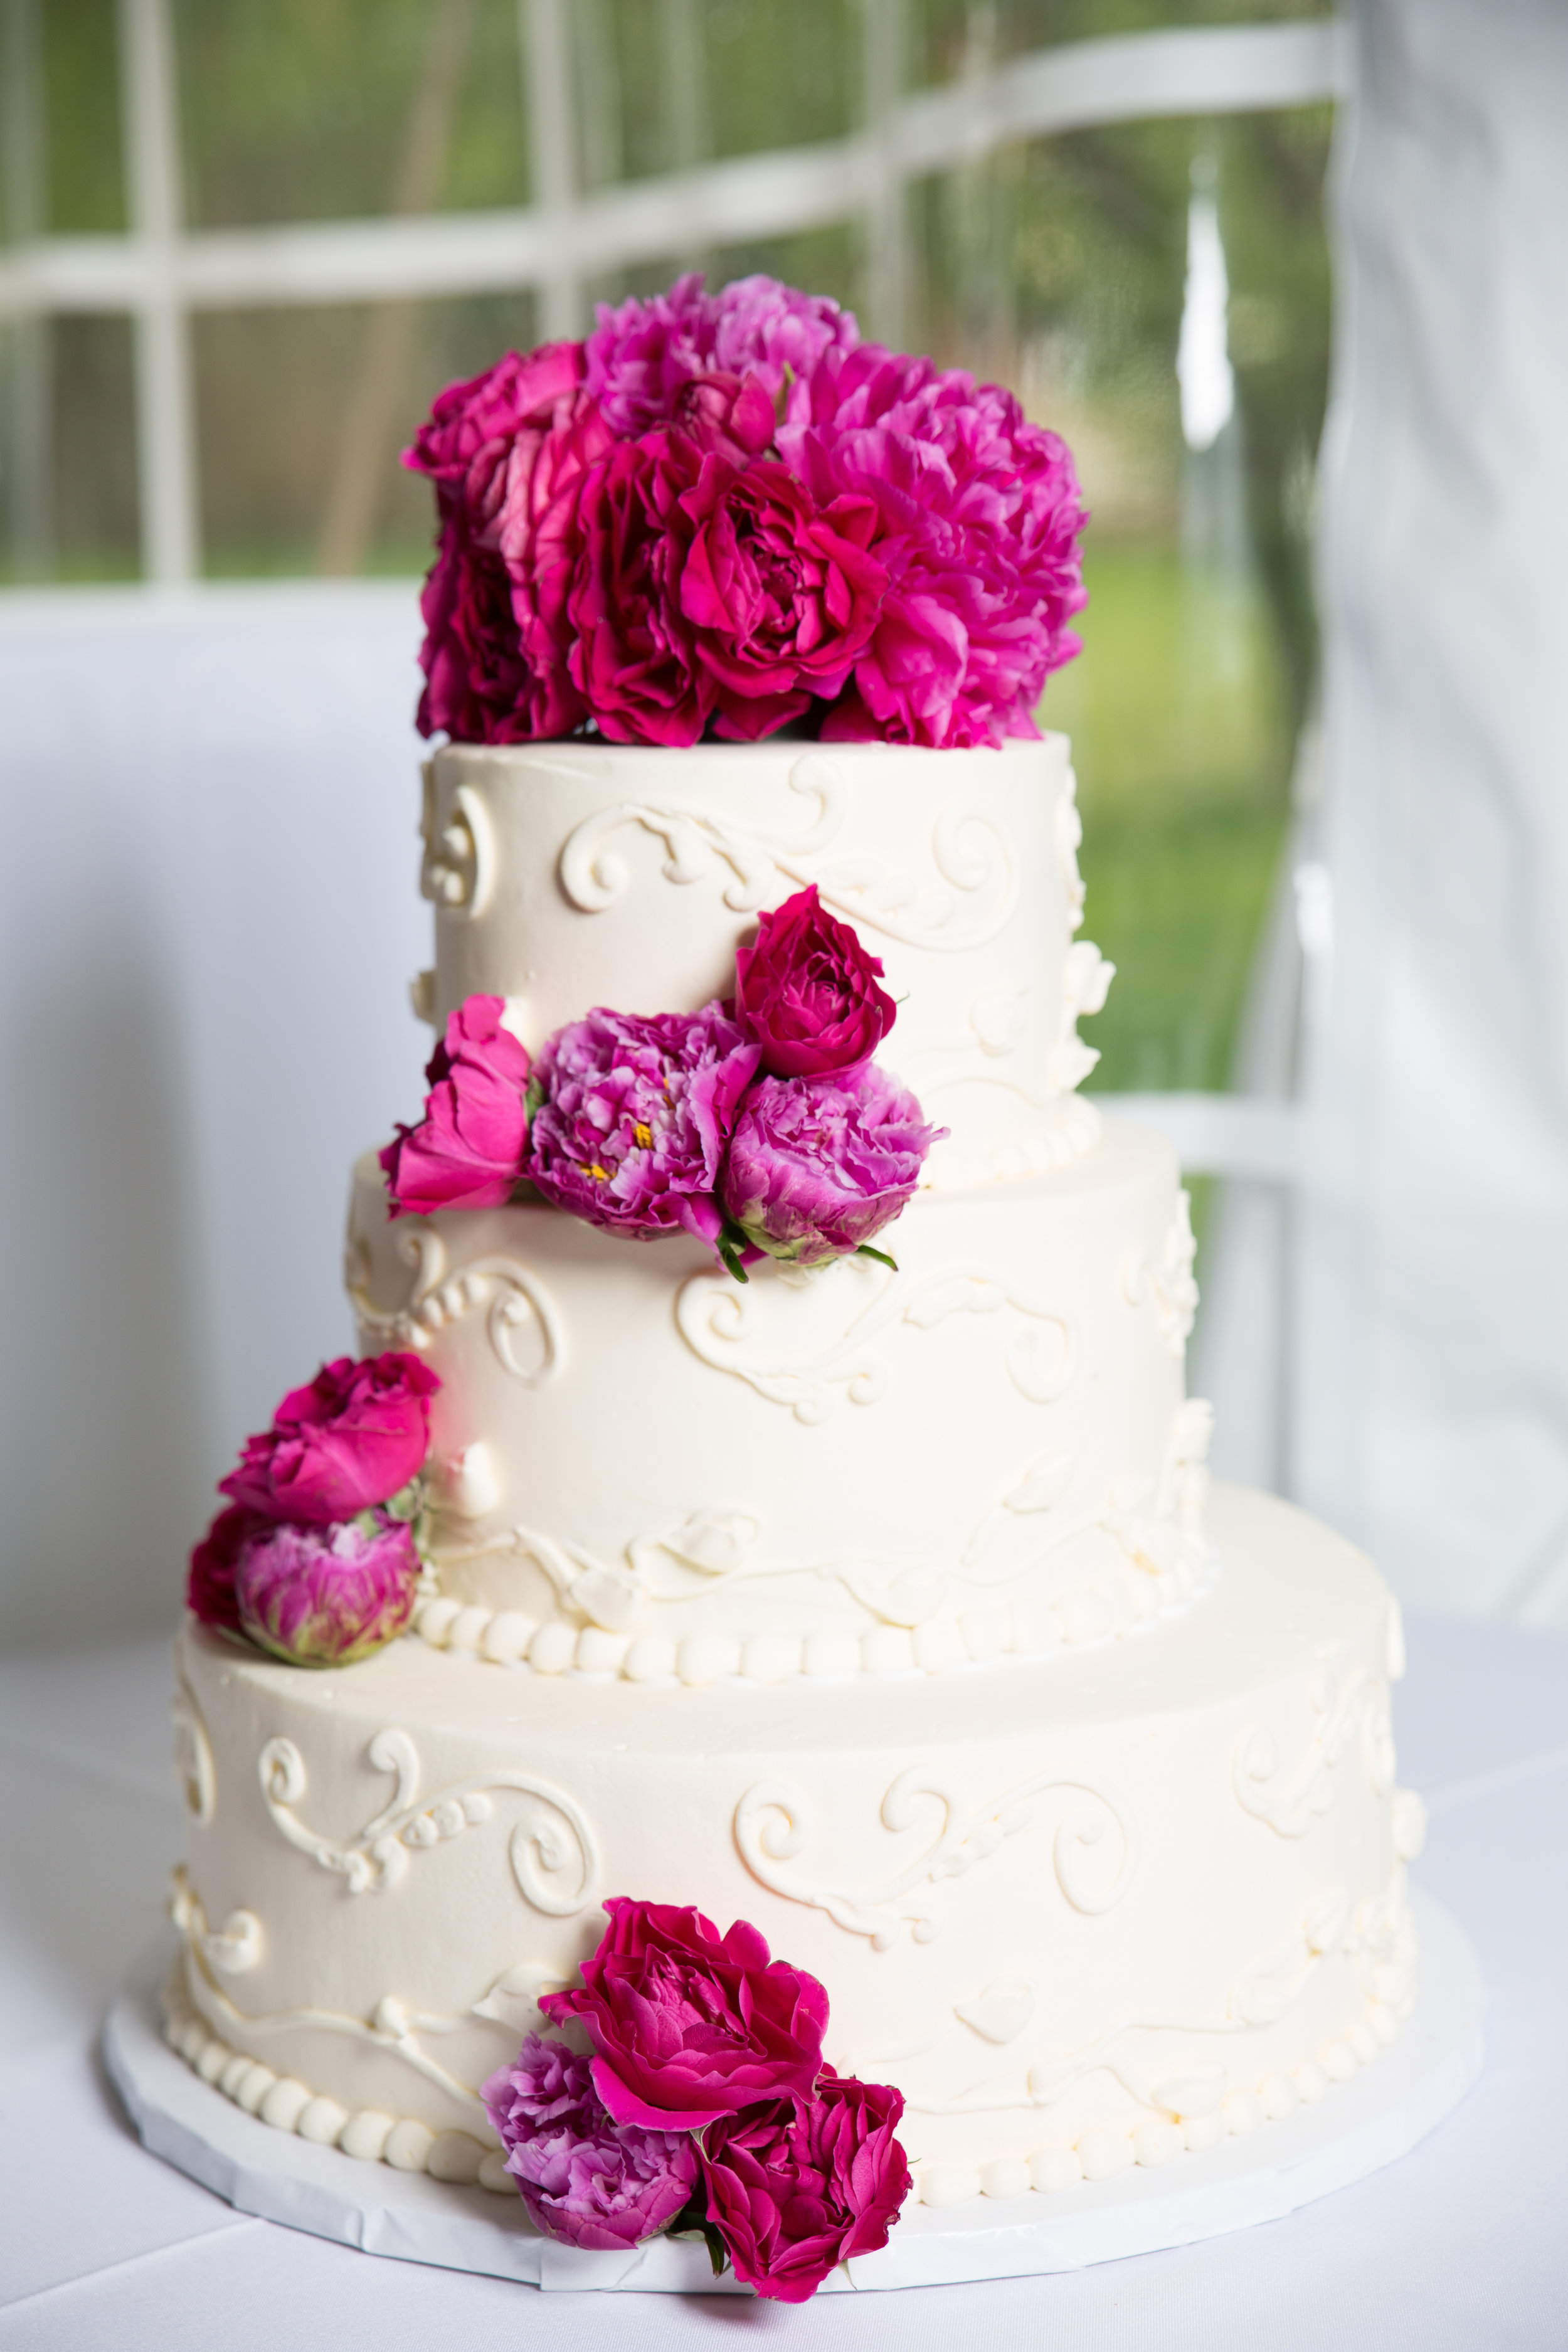 The True value of photography is it helps you remember this beautiful cake.